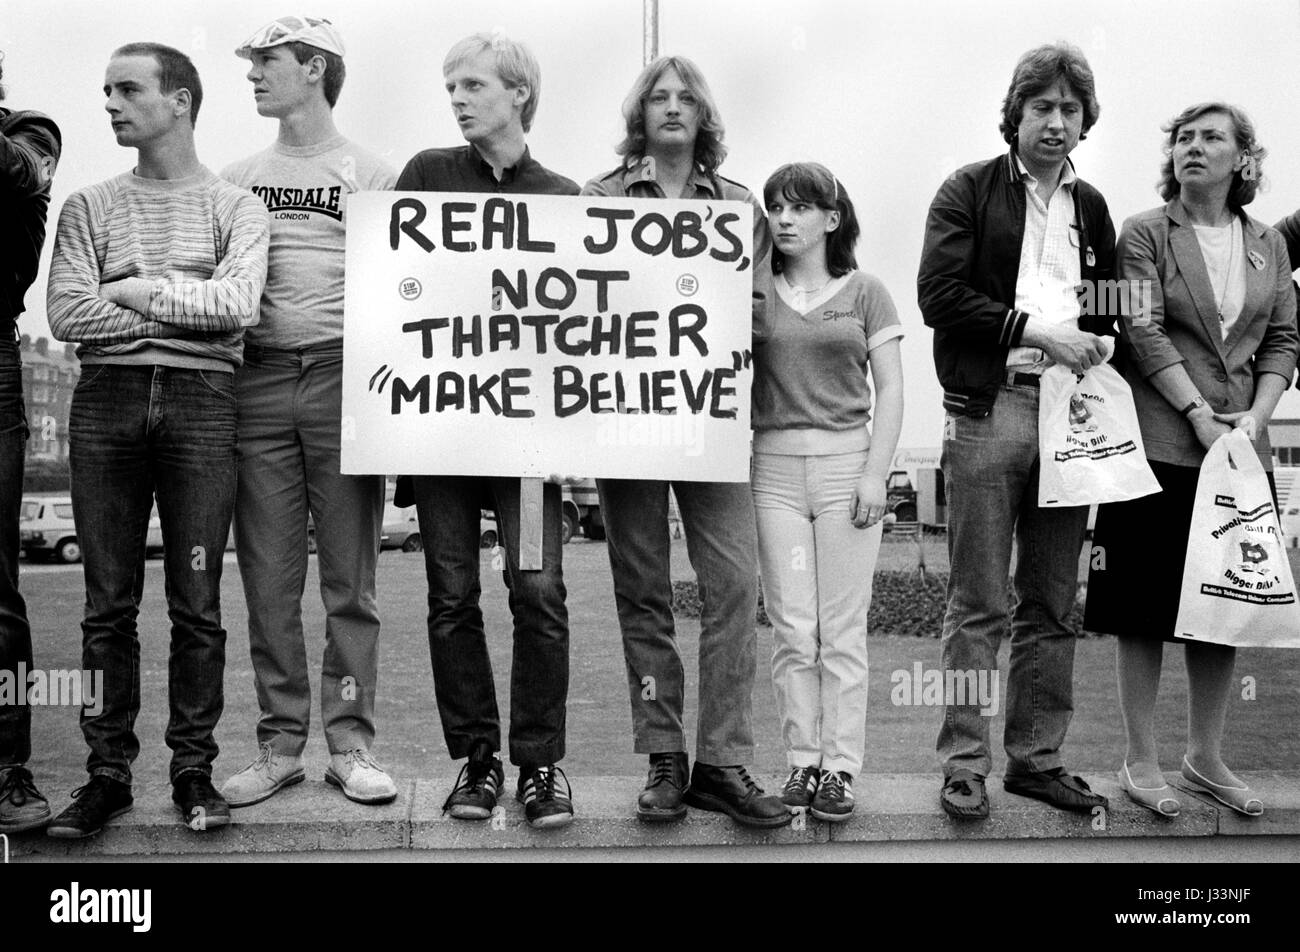 General Election 1983 Uk. Students and young adults demonstrate against the lack of job opportunities in BritainStock Photo